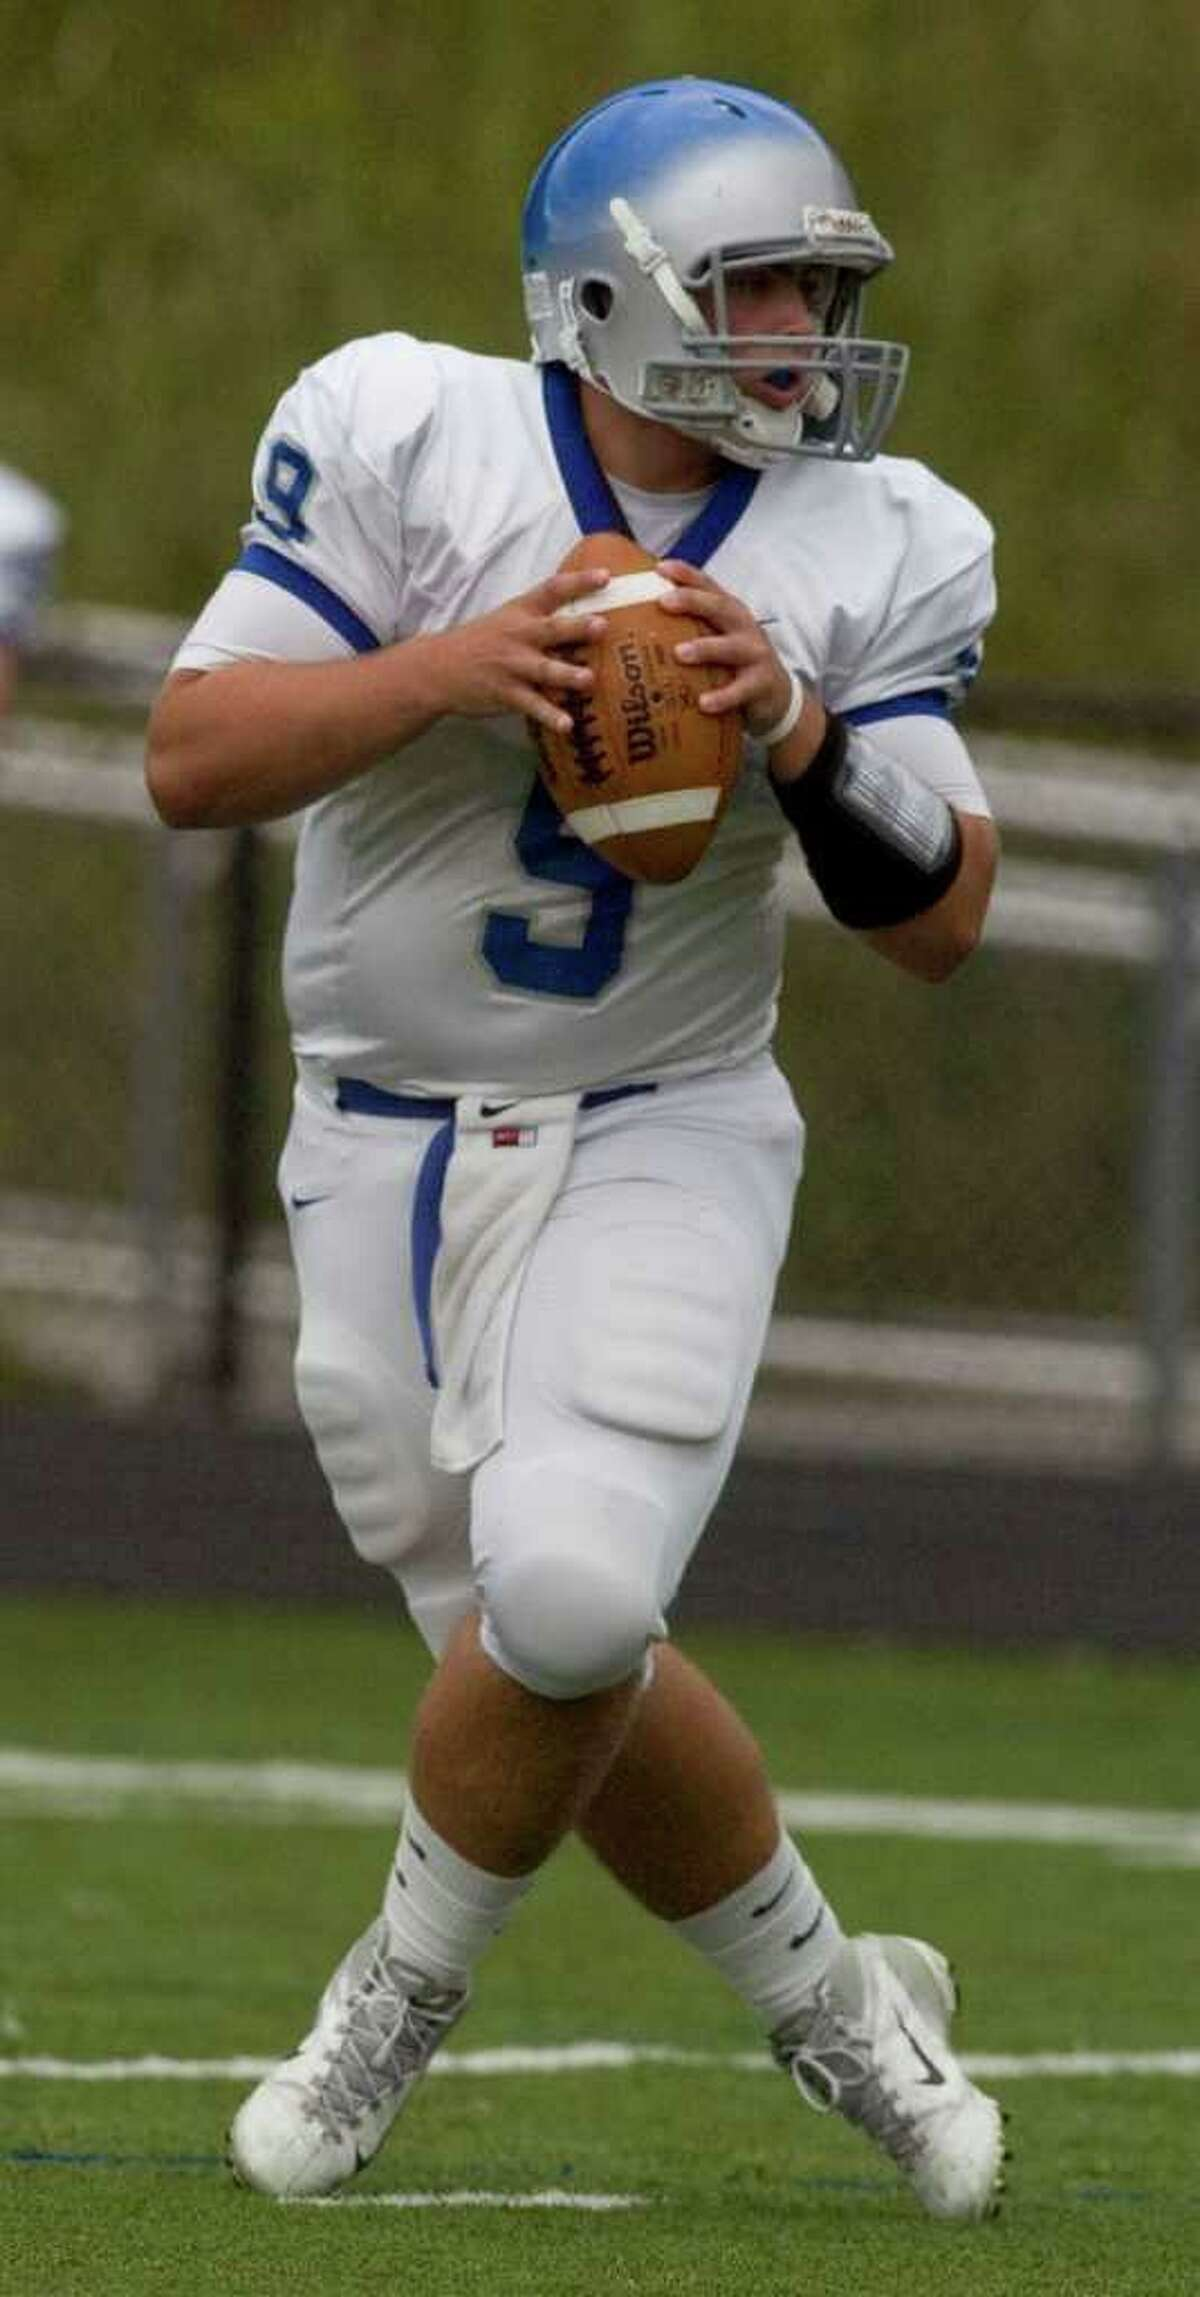 Bunnell quarterback Bryan Castelot steps back to throw during their game against Immaculate at Immaculate High School on Saturday, Sept. 17, 2011. Bunnell won 46-21.